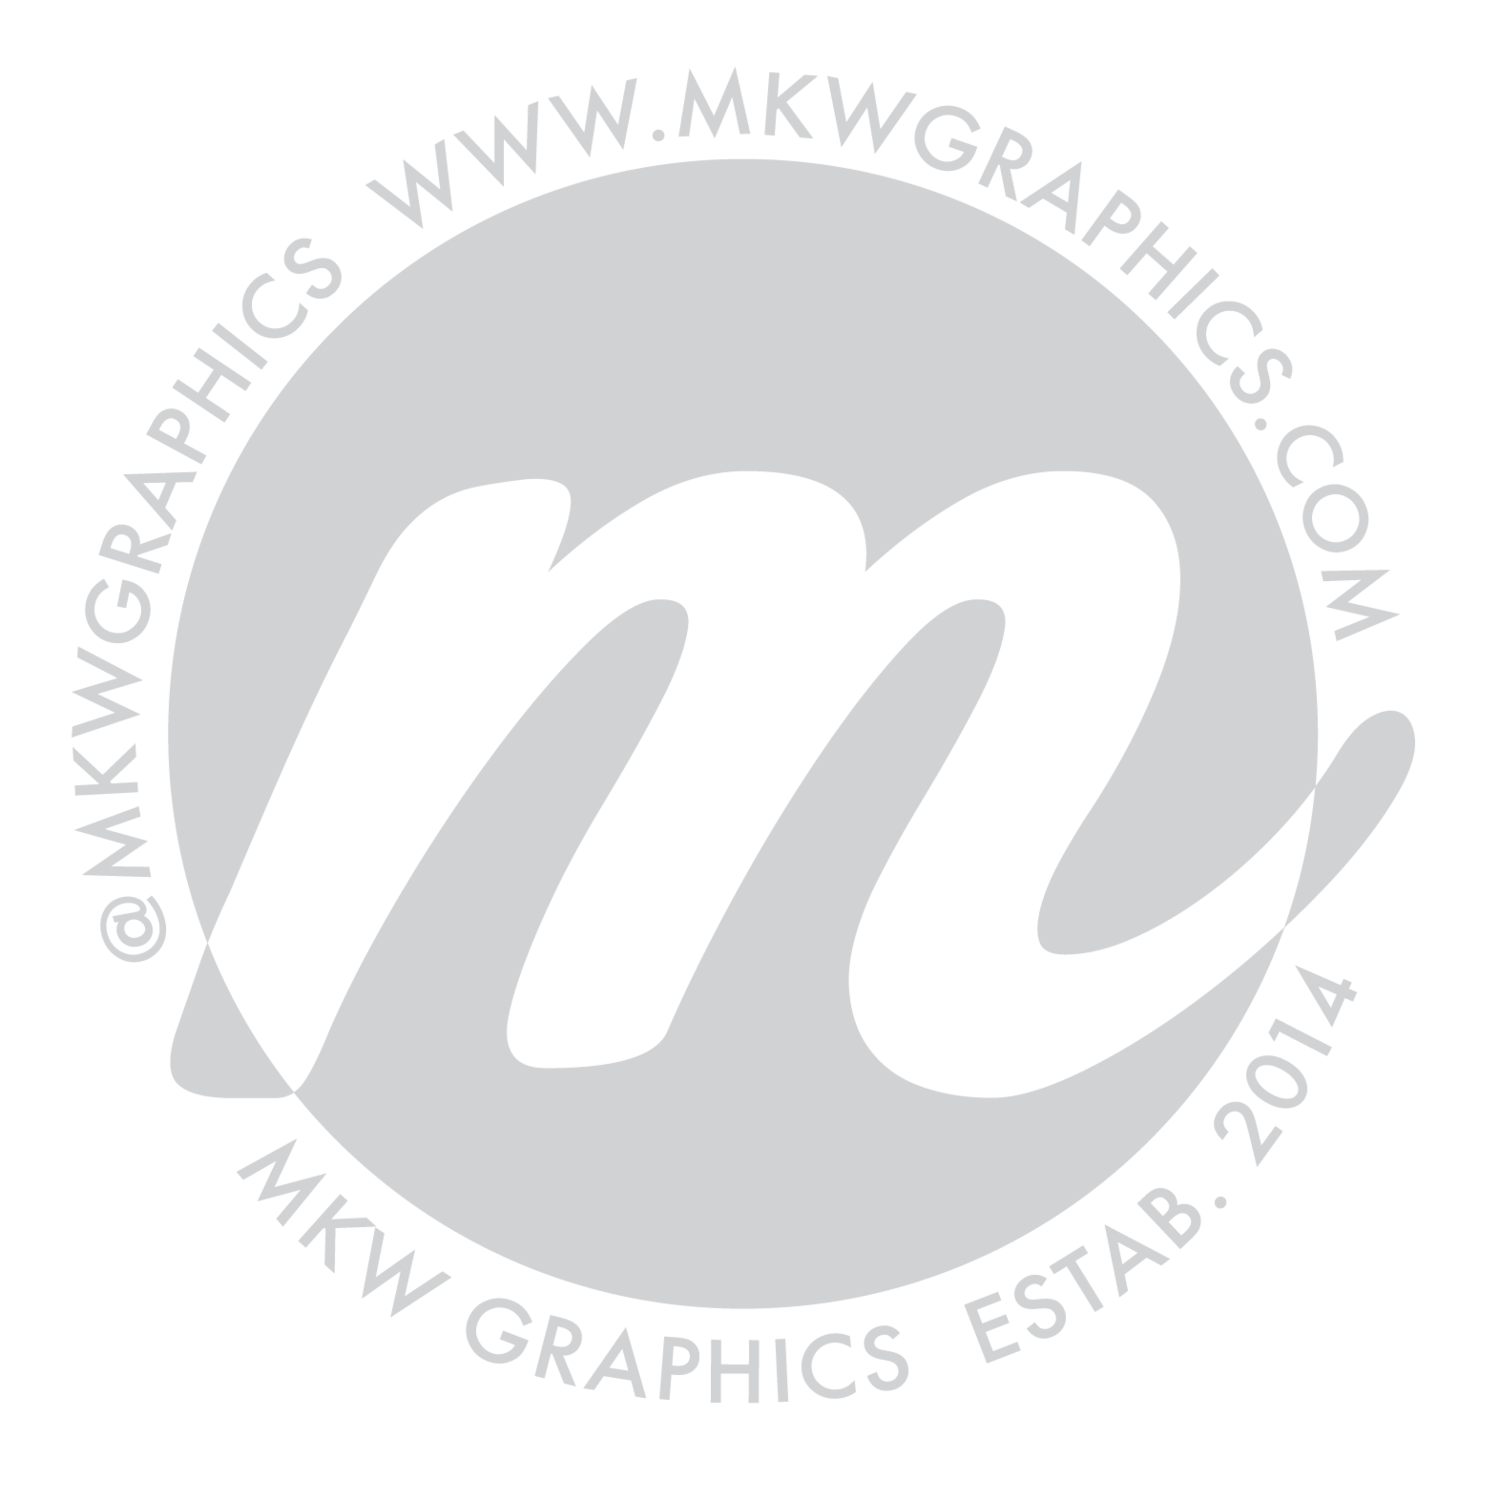 MKW Graphics